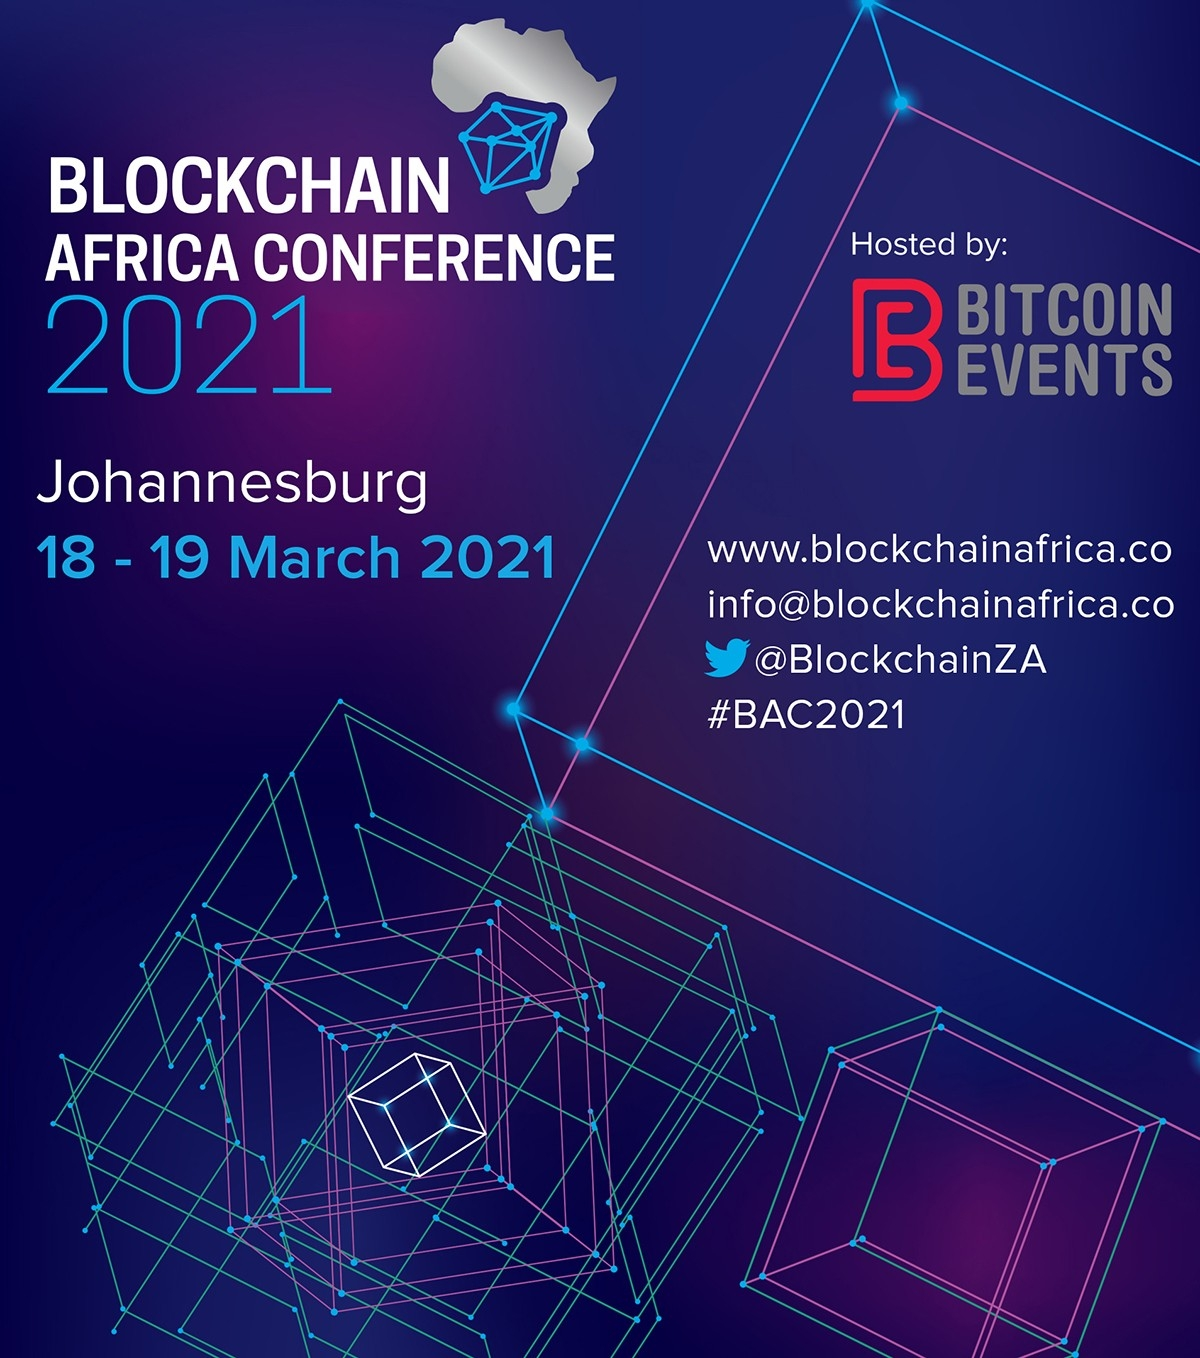 Datafloq - Meet: Blockchain Africa Conference 2021  How Many Weeks In The 2021/19 Financial Year